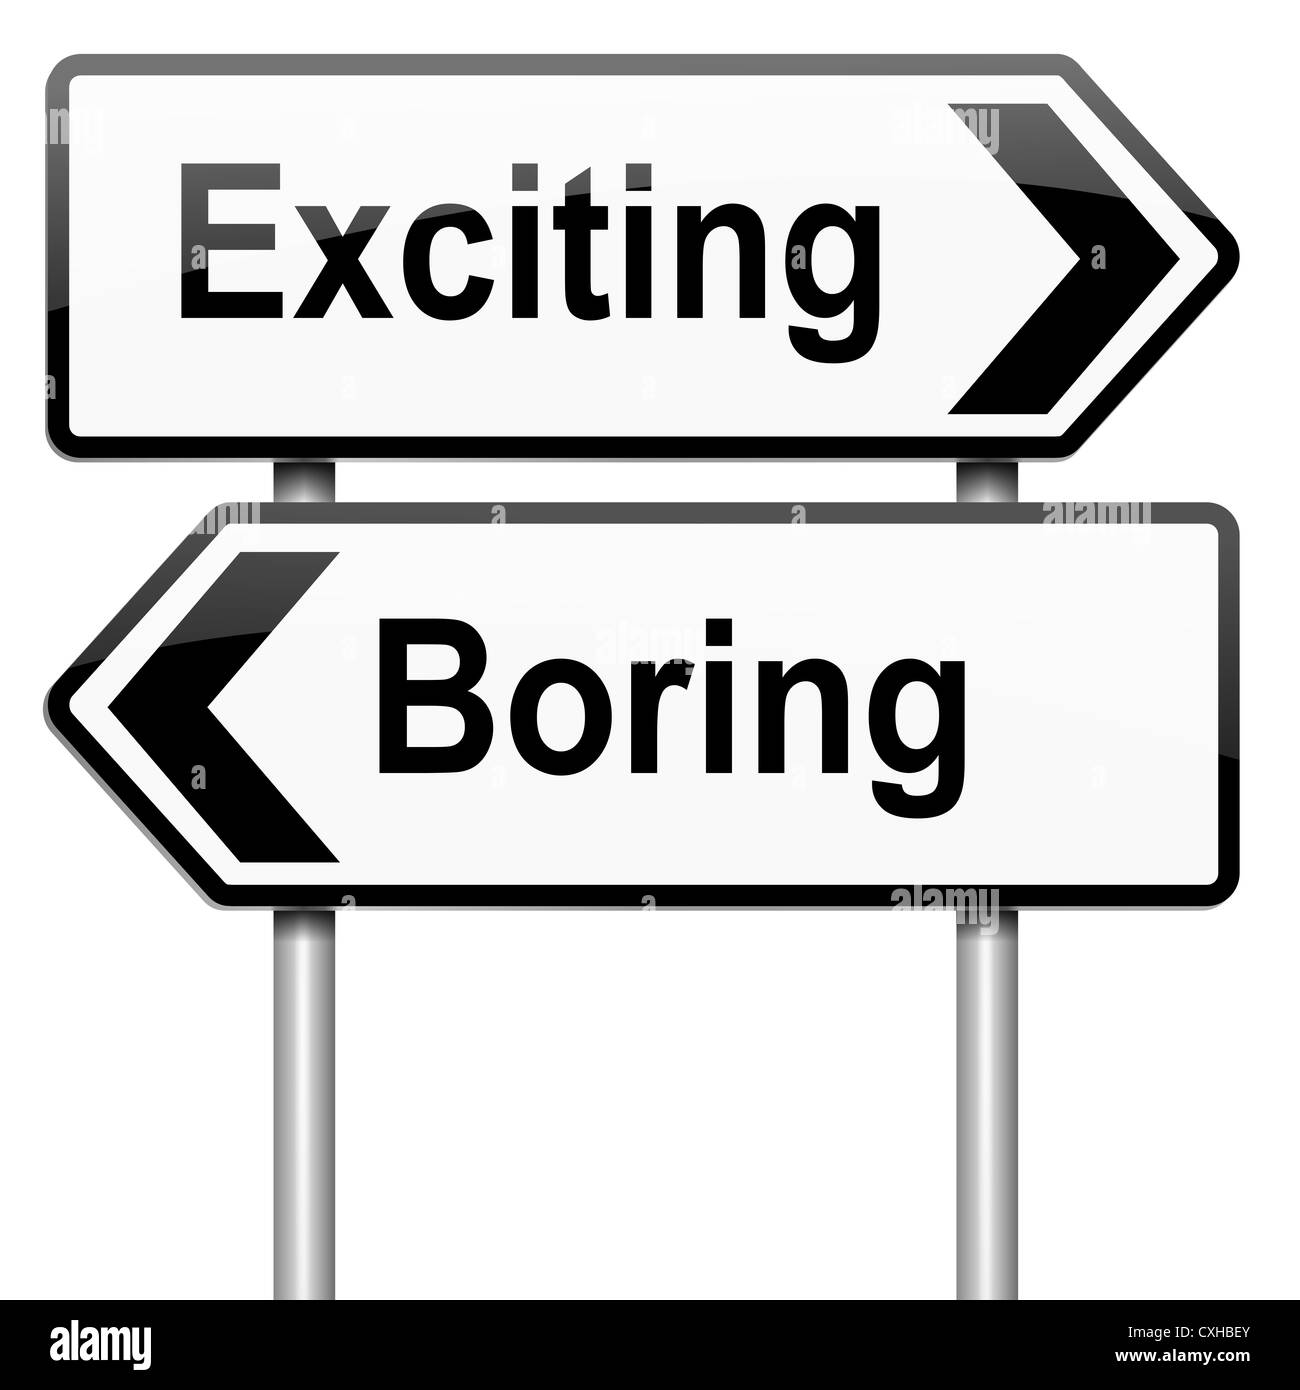 Exciting or boring. Stock Photo